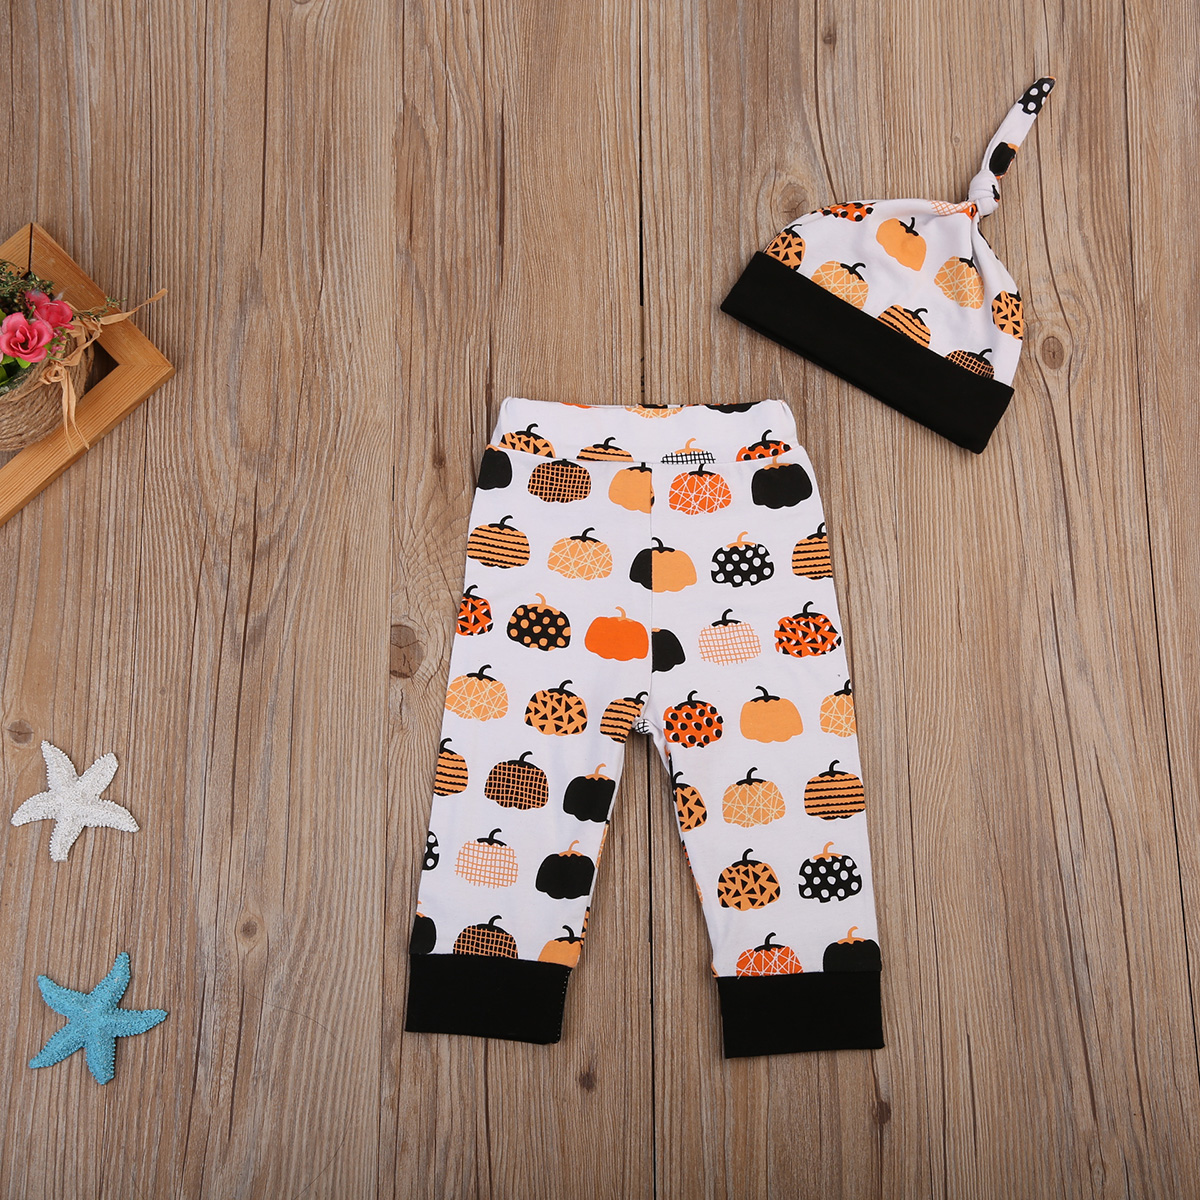 17 Cute Halloween Newborn Baby Boys Girls Winter Clothes Long Sleeve Romper Pants Leggings Cotton Pumpkin Print Outfit 3pcs 9